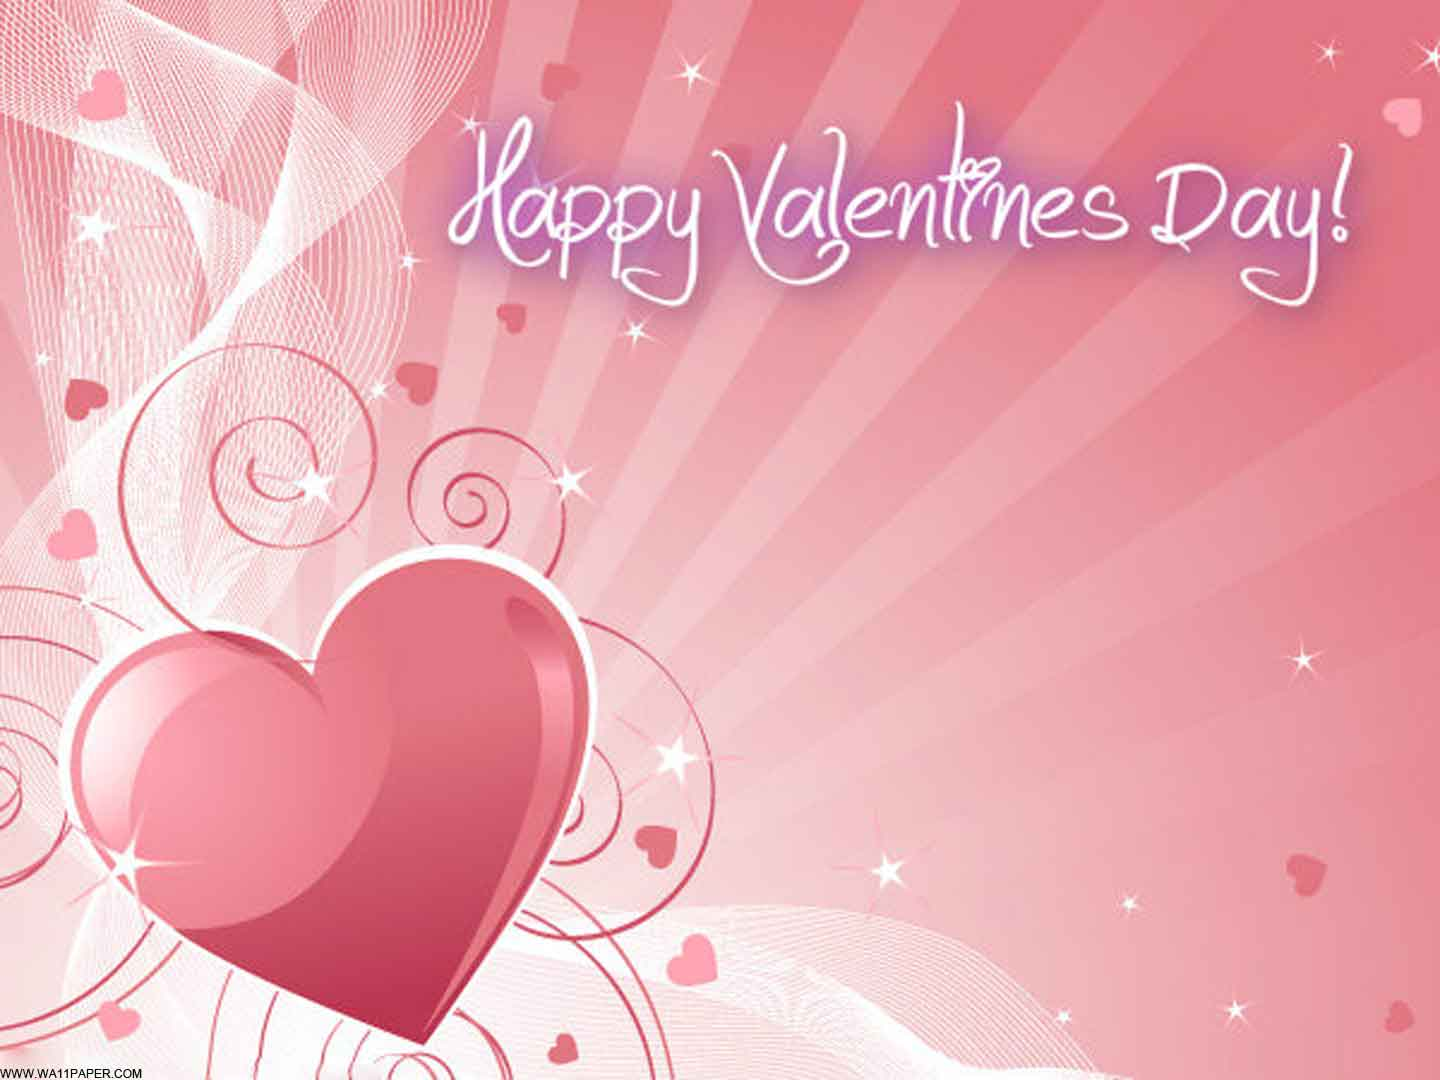 valentines+day+hearts+%252812%2529